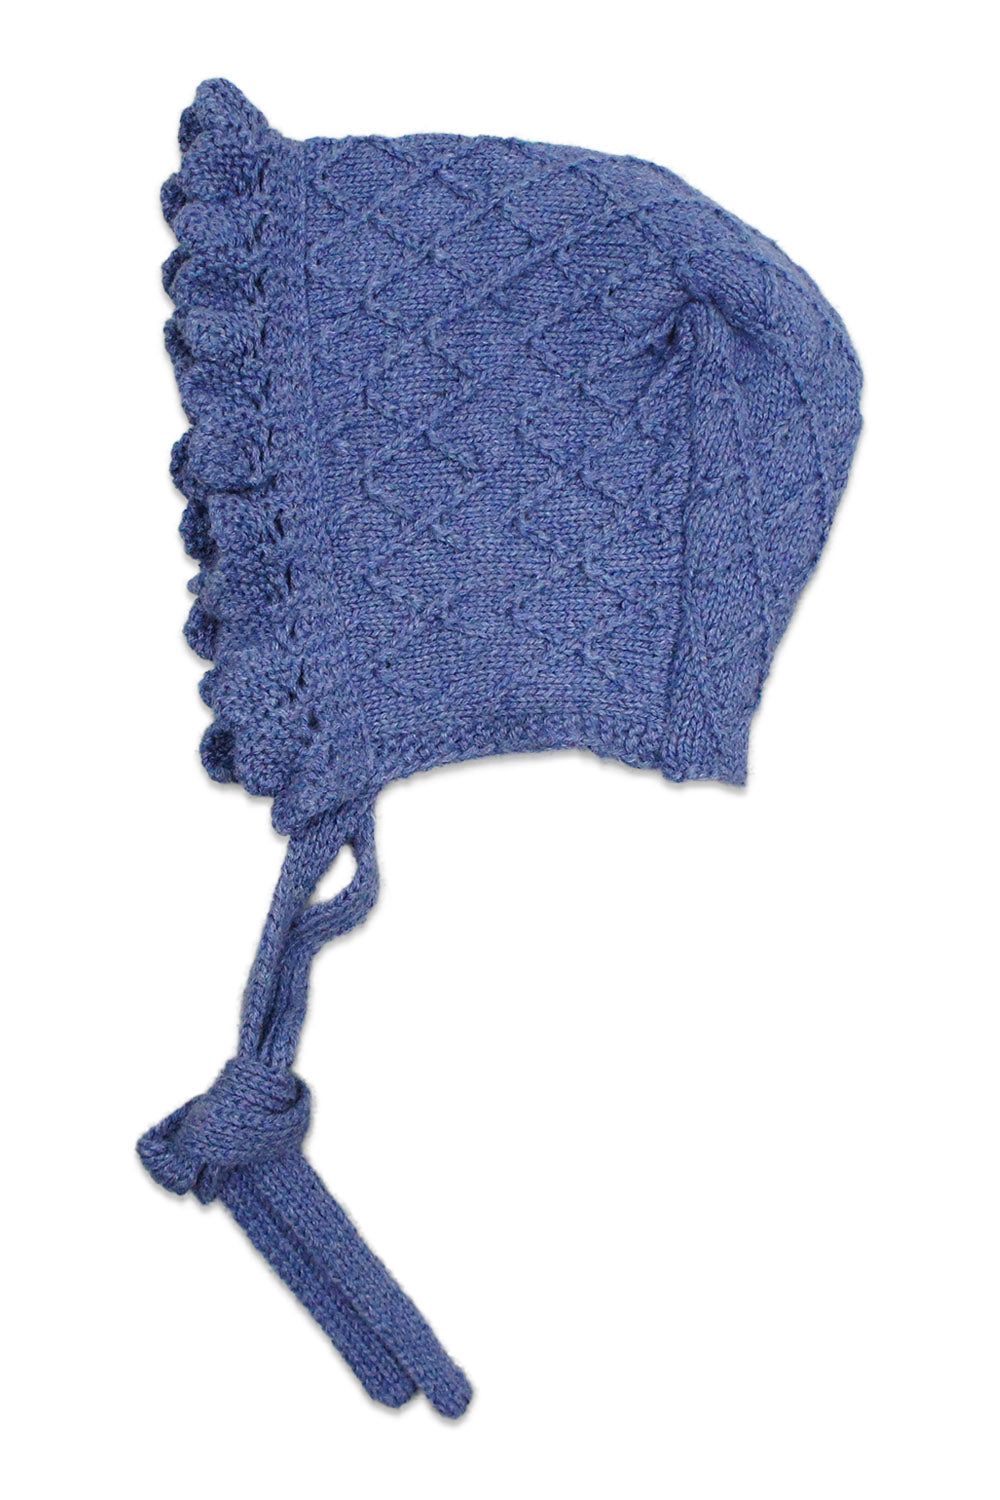 Nueces Dusty Blue Rhombus Bonnet